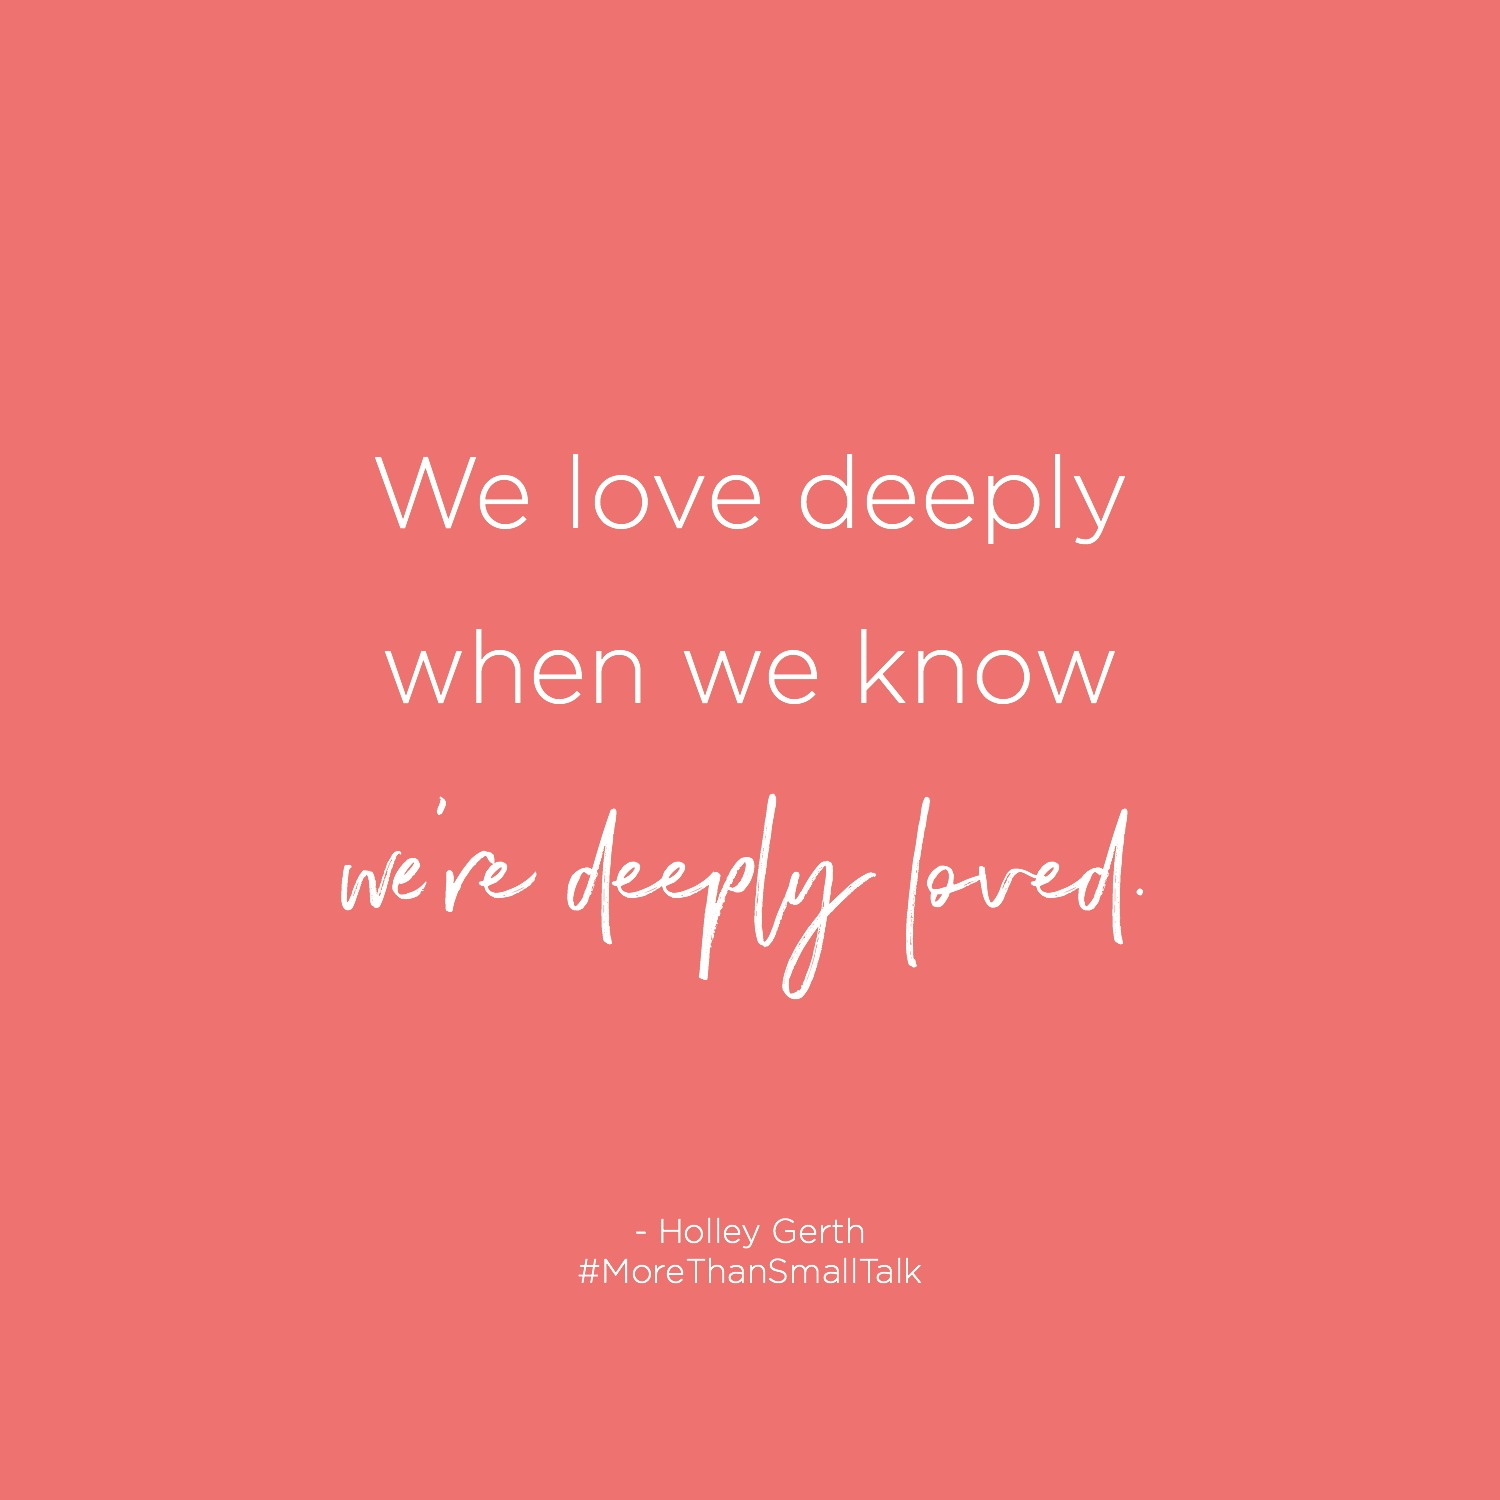 We love deeply when we know we're deeply loved.